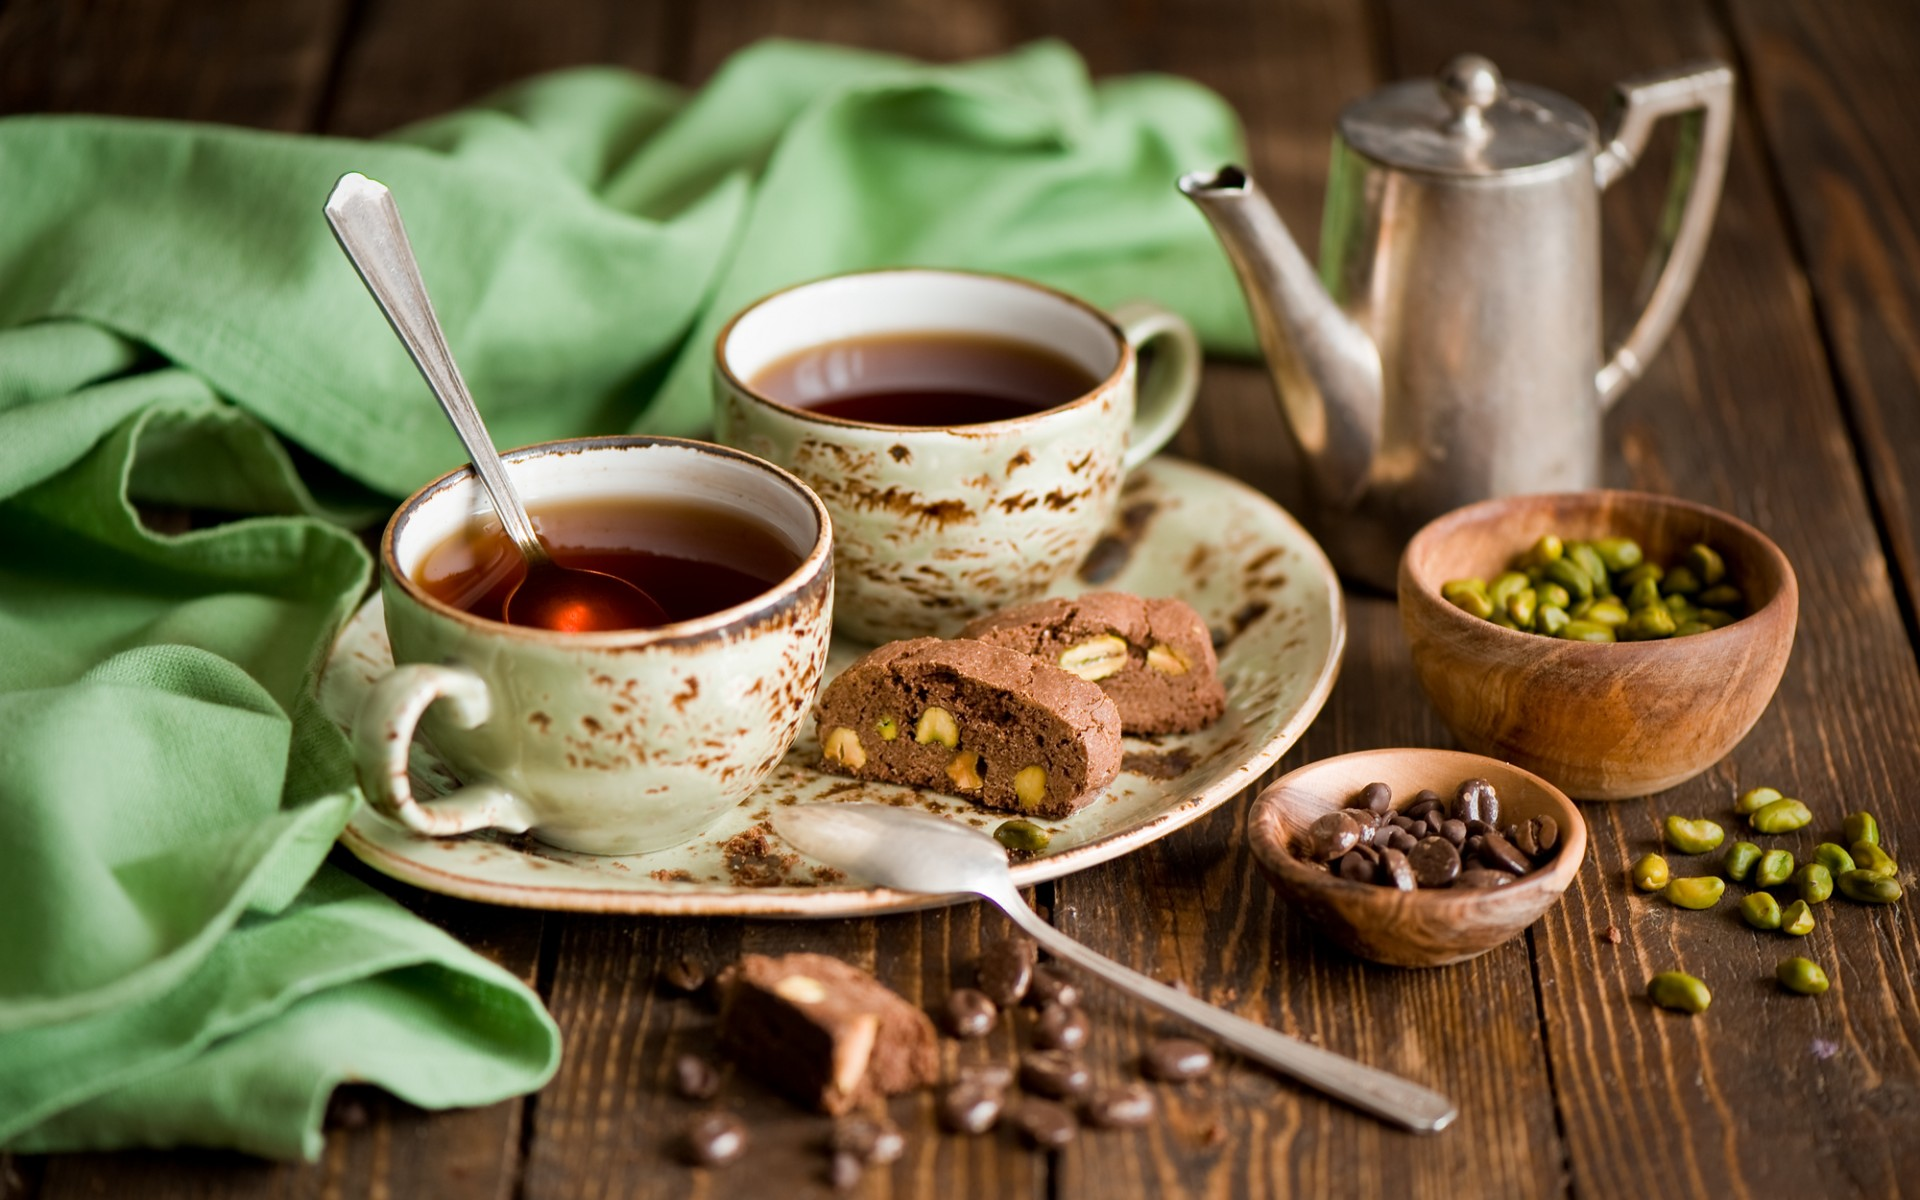 drink a cup of tea wallpapers55com   Best Wallpapers for PCs 1920x1200